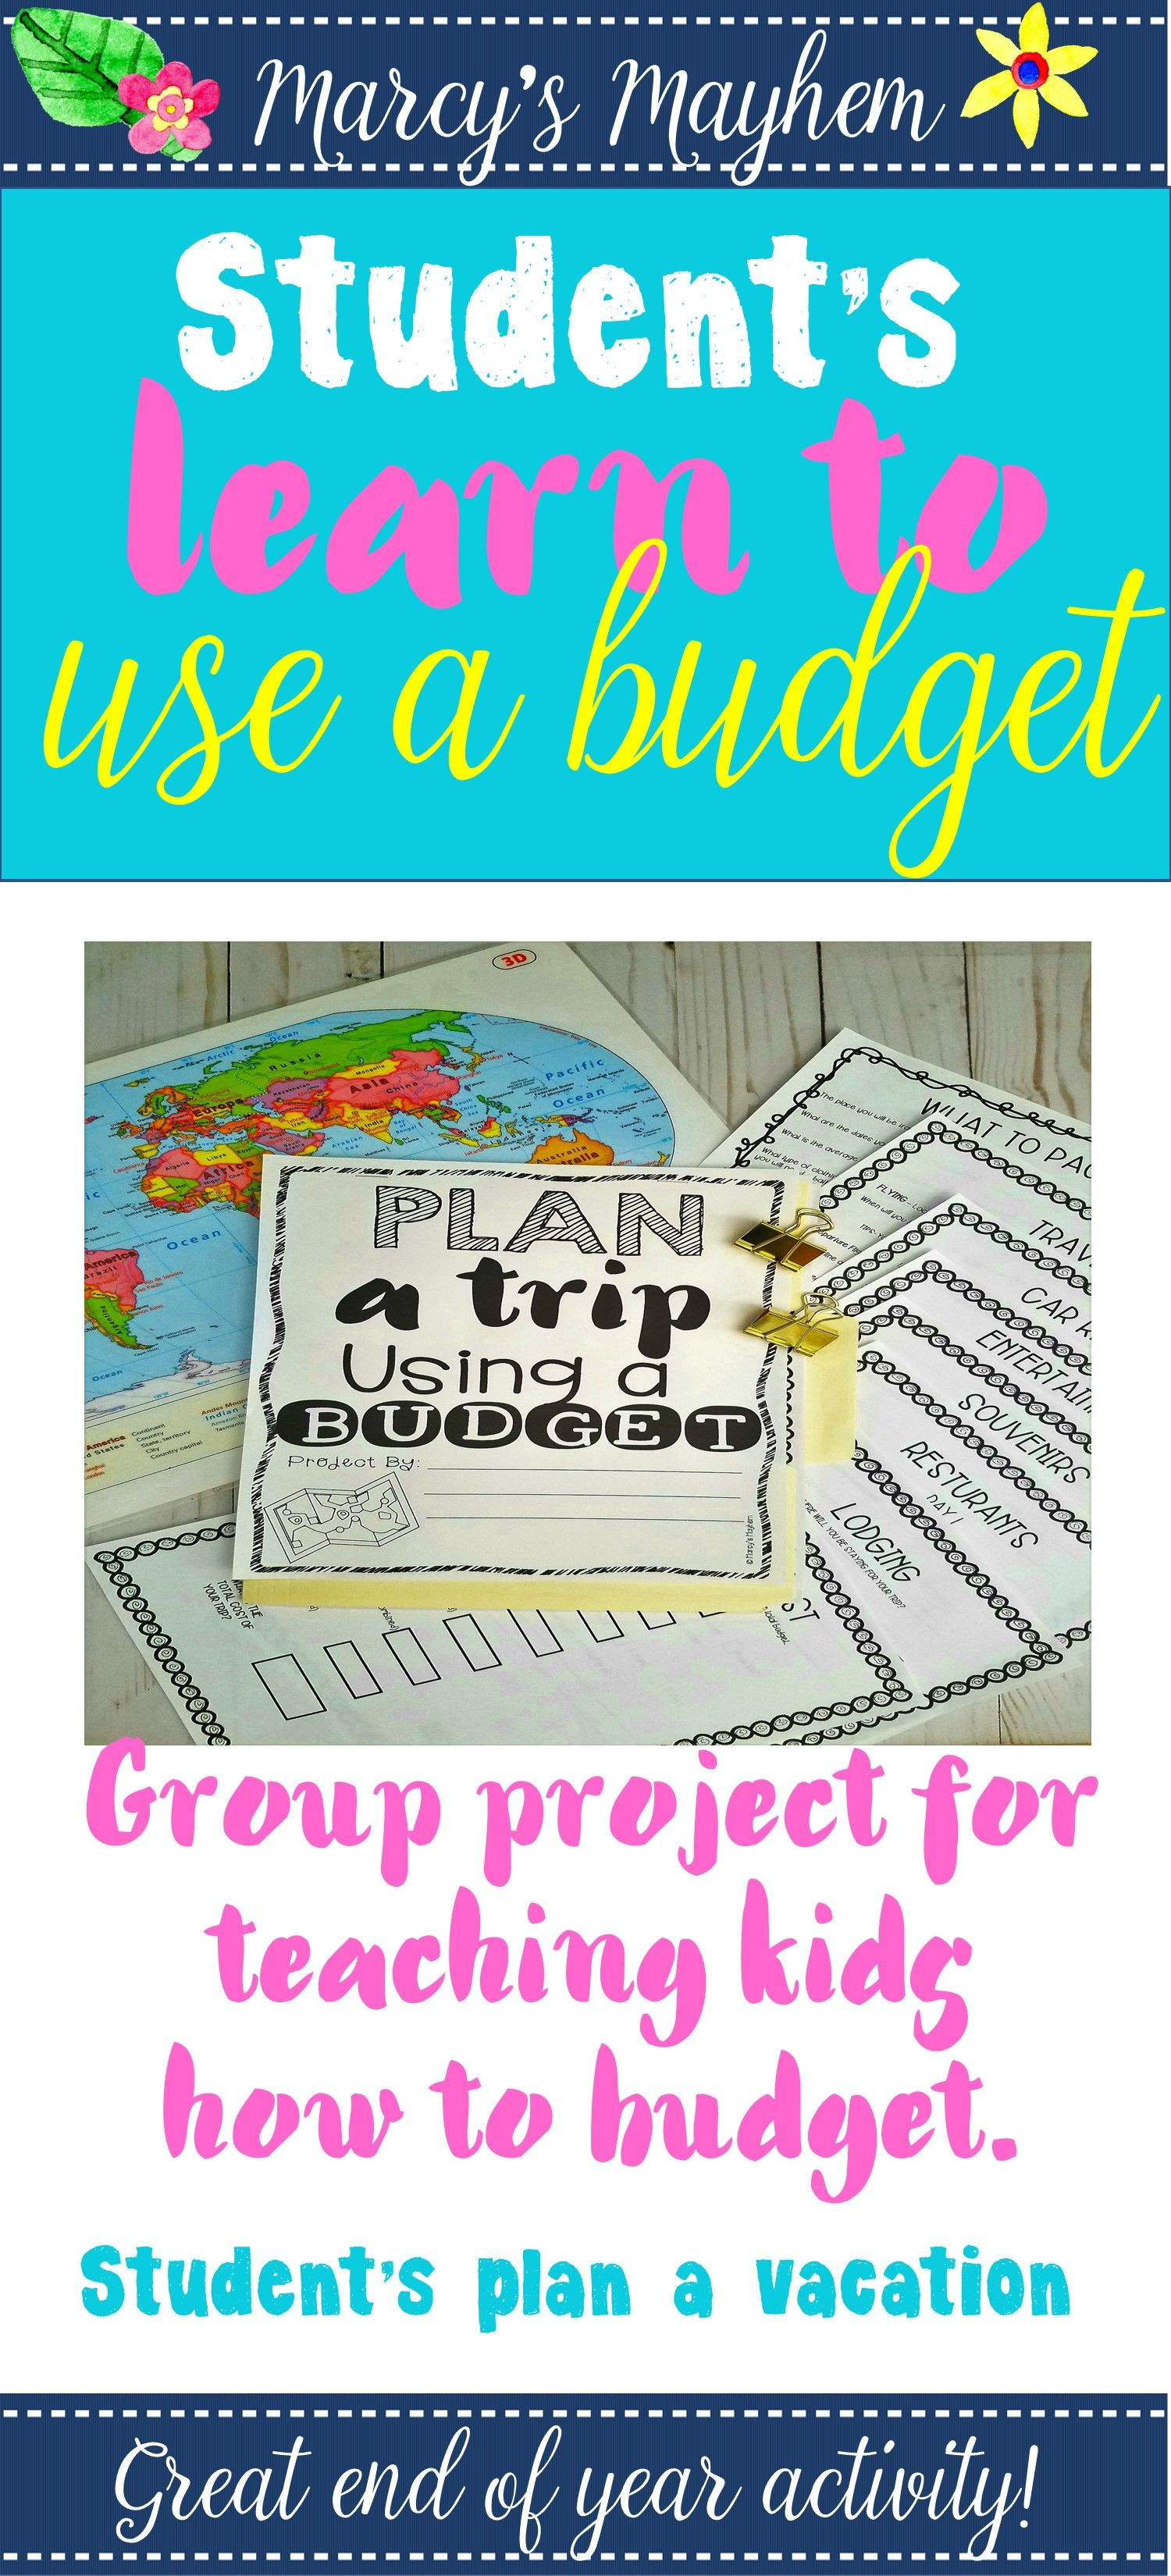 Math Project Based Learning Budgeting Activity 4th 5th